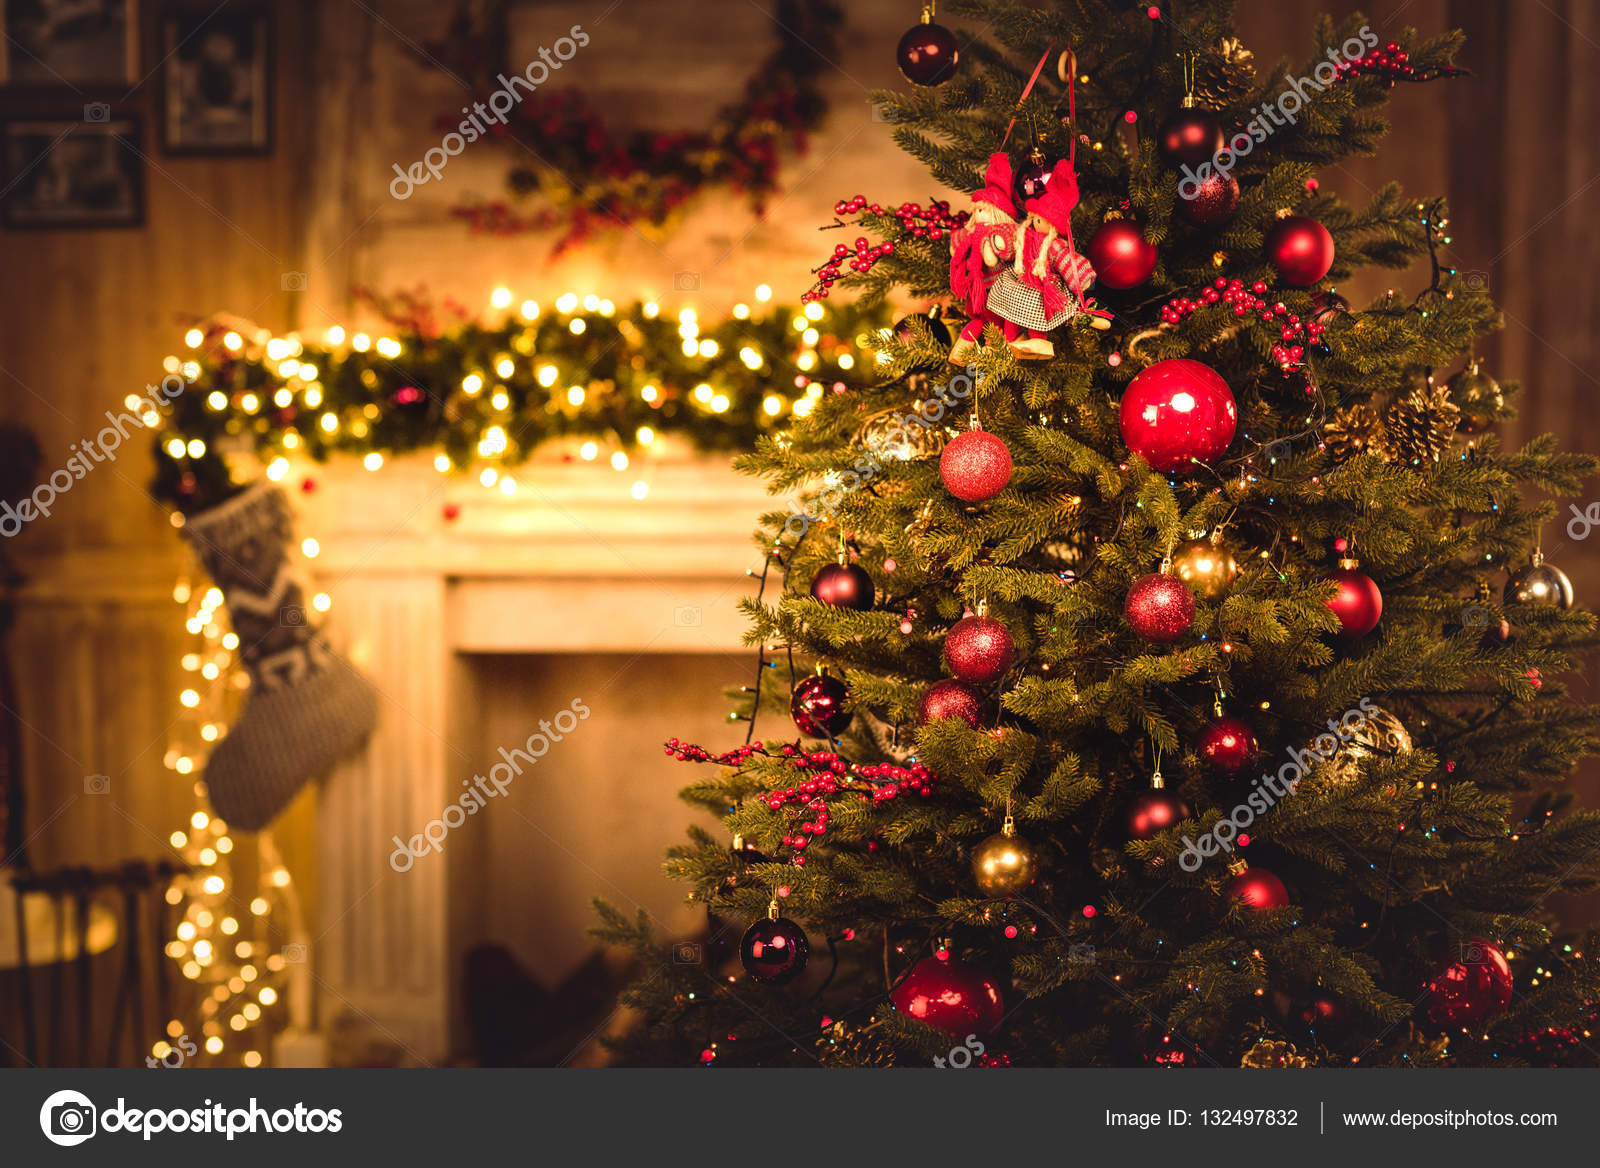 Christmas Stock Photos & Images. Photo Deal: 100 Royalty-free Photos & Vectors - $69! - depositphotos 132497832 stock photo christmas decorations hanging on fir